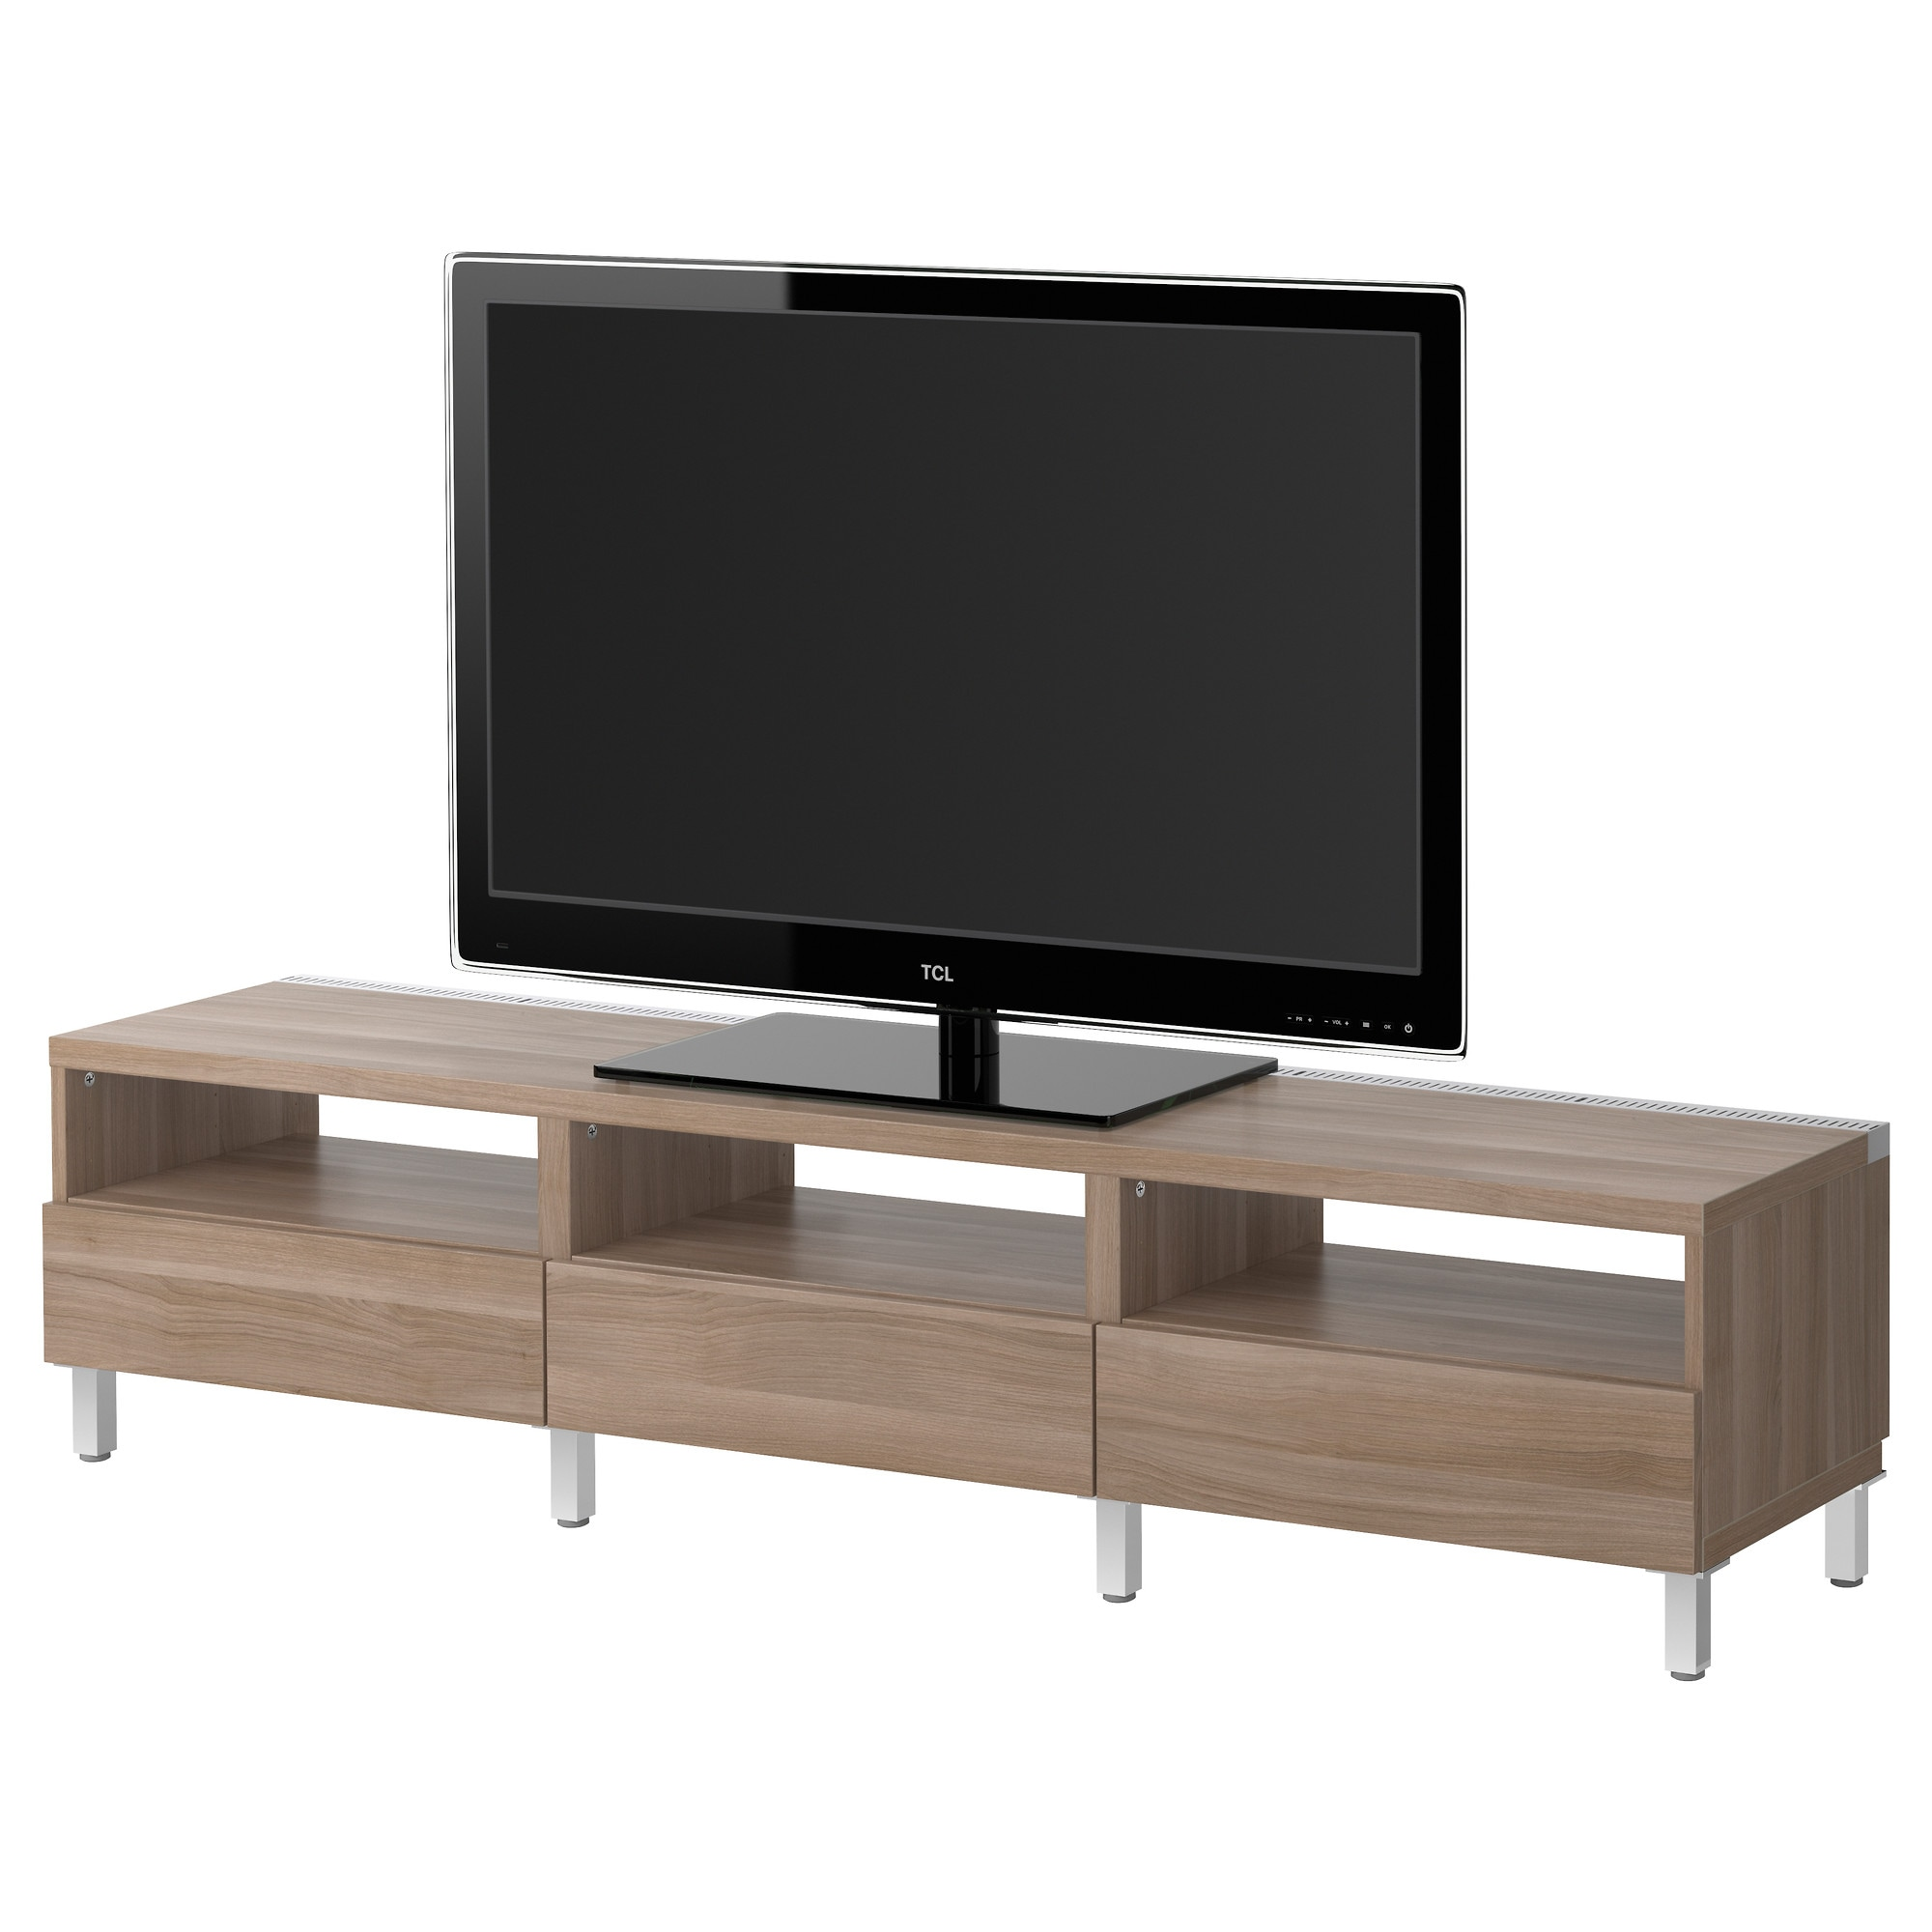 Cloison coulissante ikea stunning cloisons amovibles ikea - Cloisons amovibles ikea ...